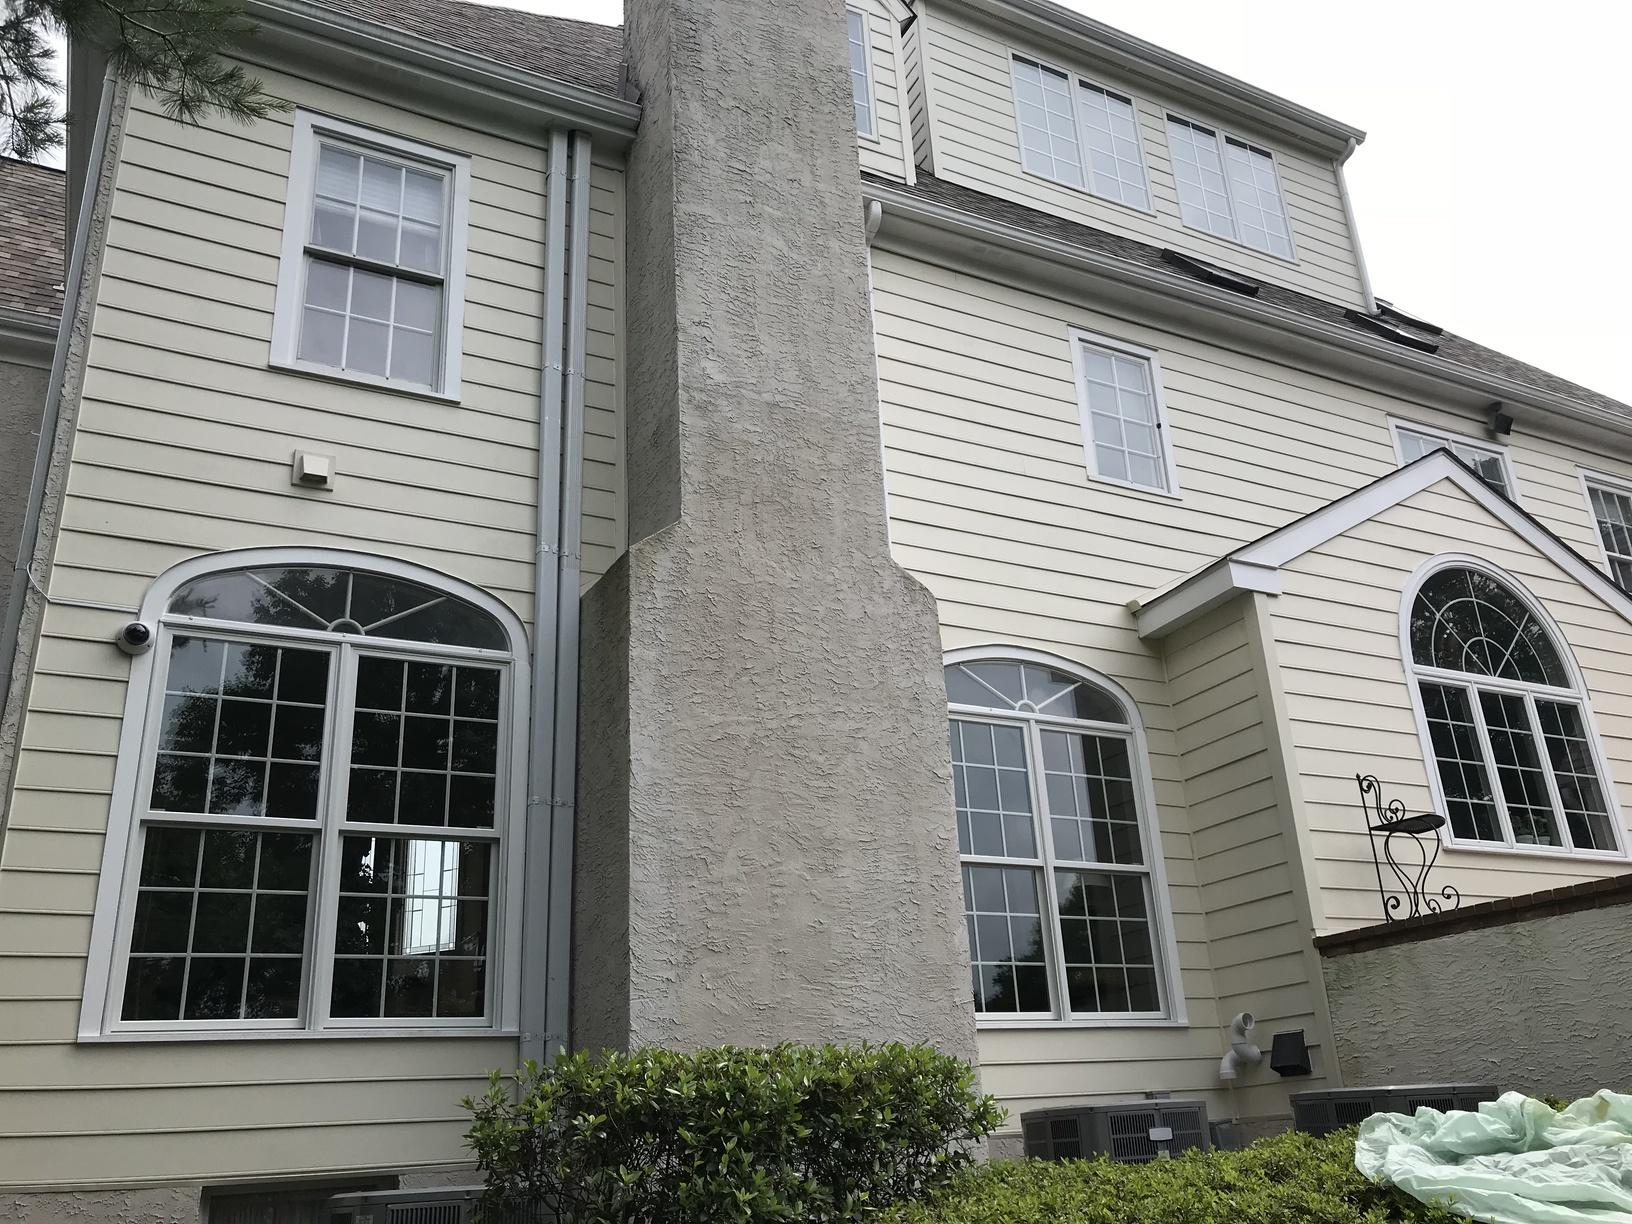 Replacing Water-Damaged Stucco with Sail Cloth Beaded Fiber Cement Planks in Newtown Square, PA - After Photo